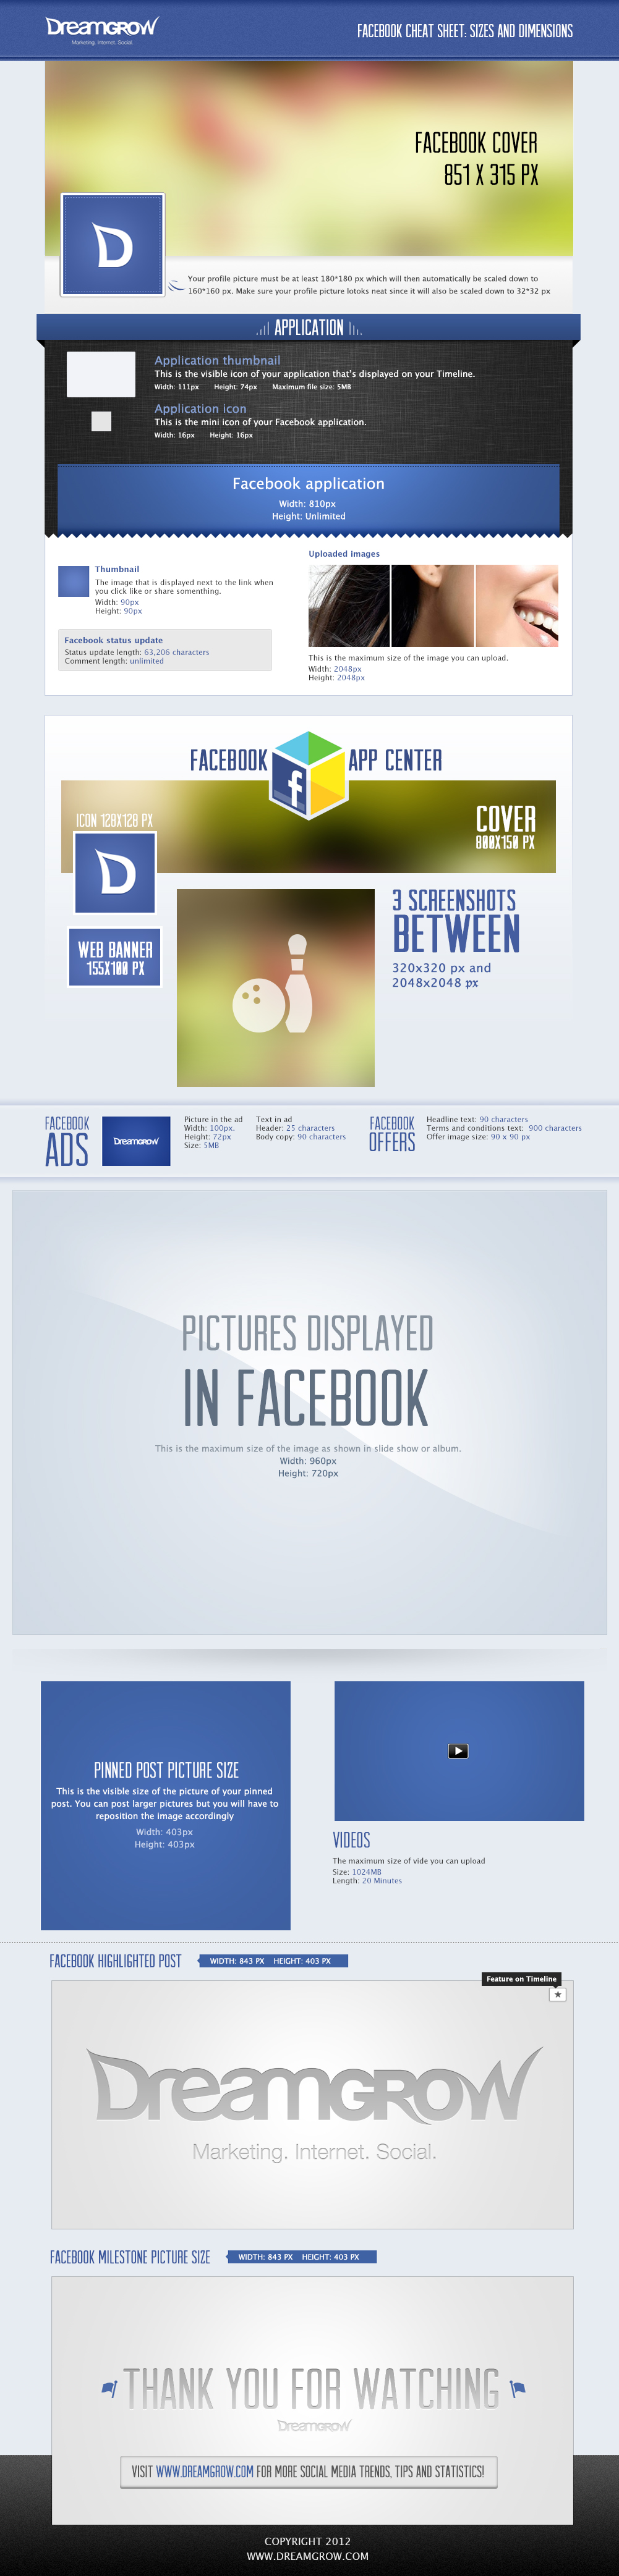 Facebook-Sizes-and-Dimensions